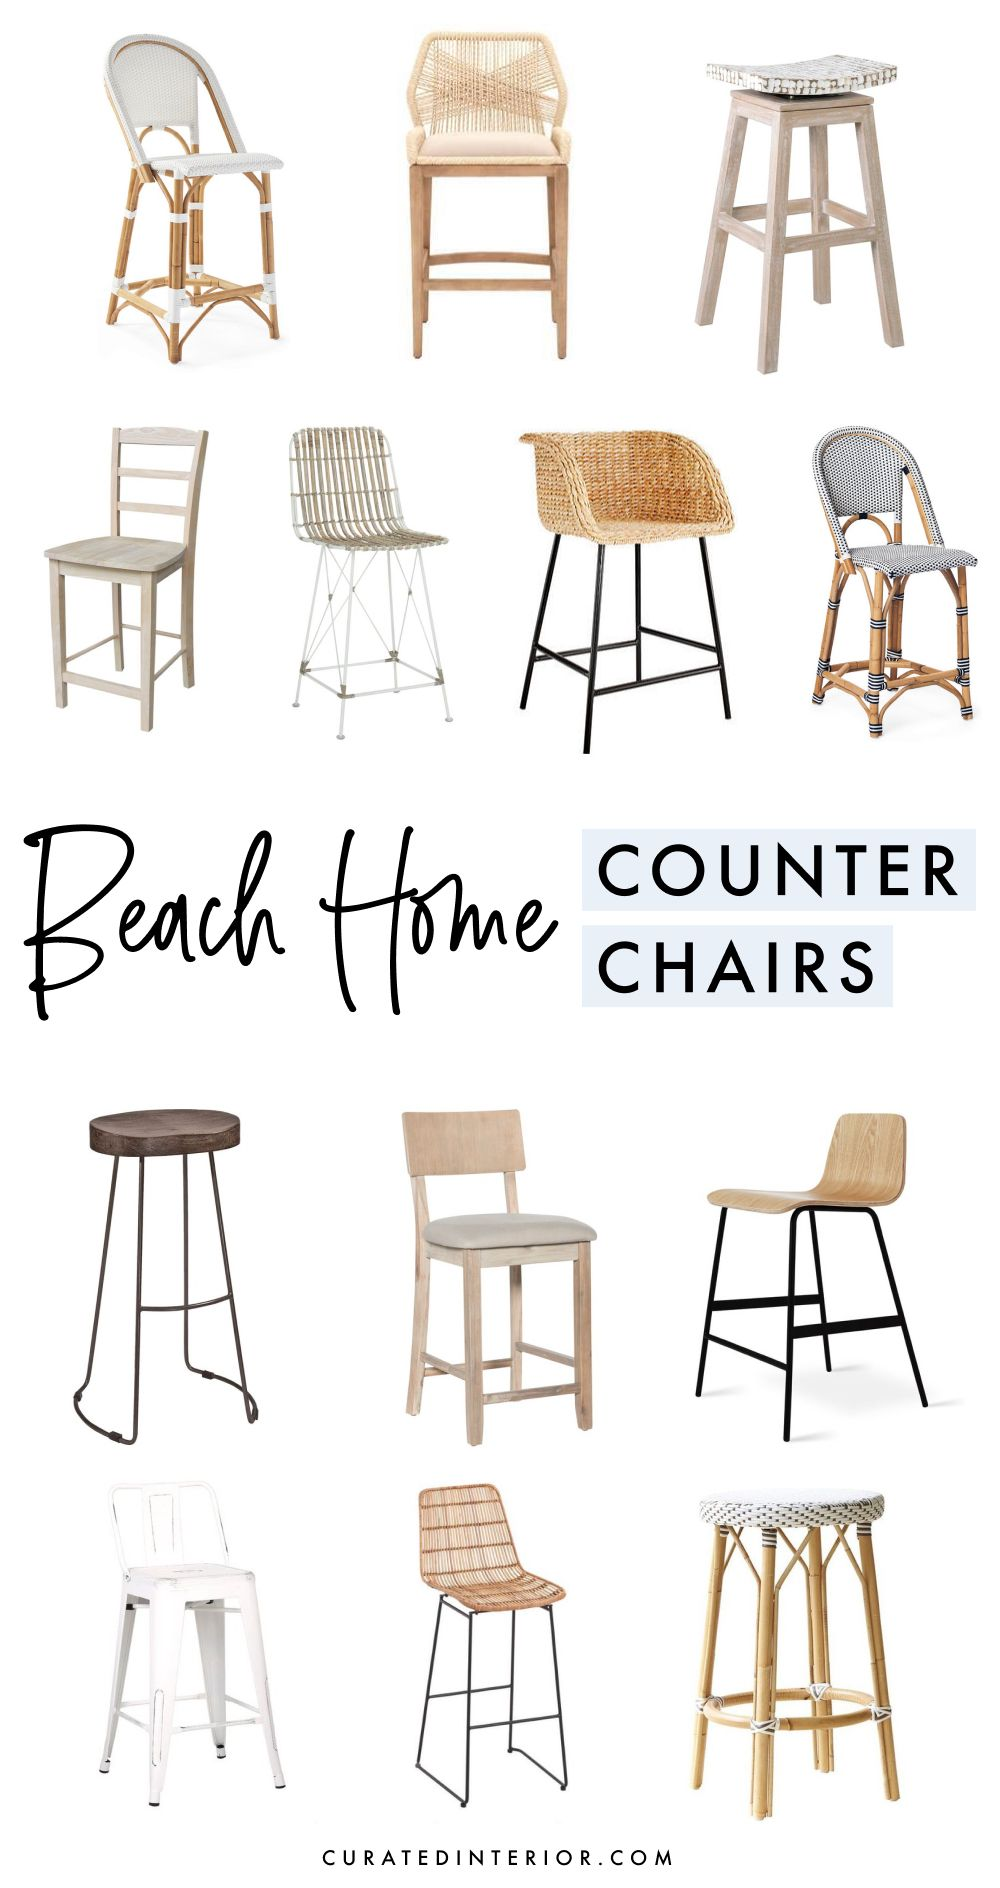 Beach Home Counter Chairs